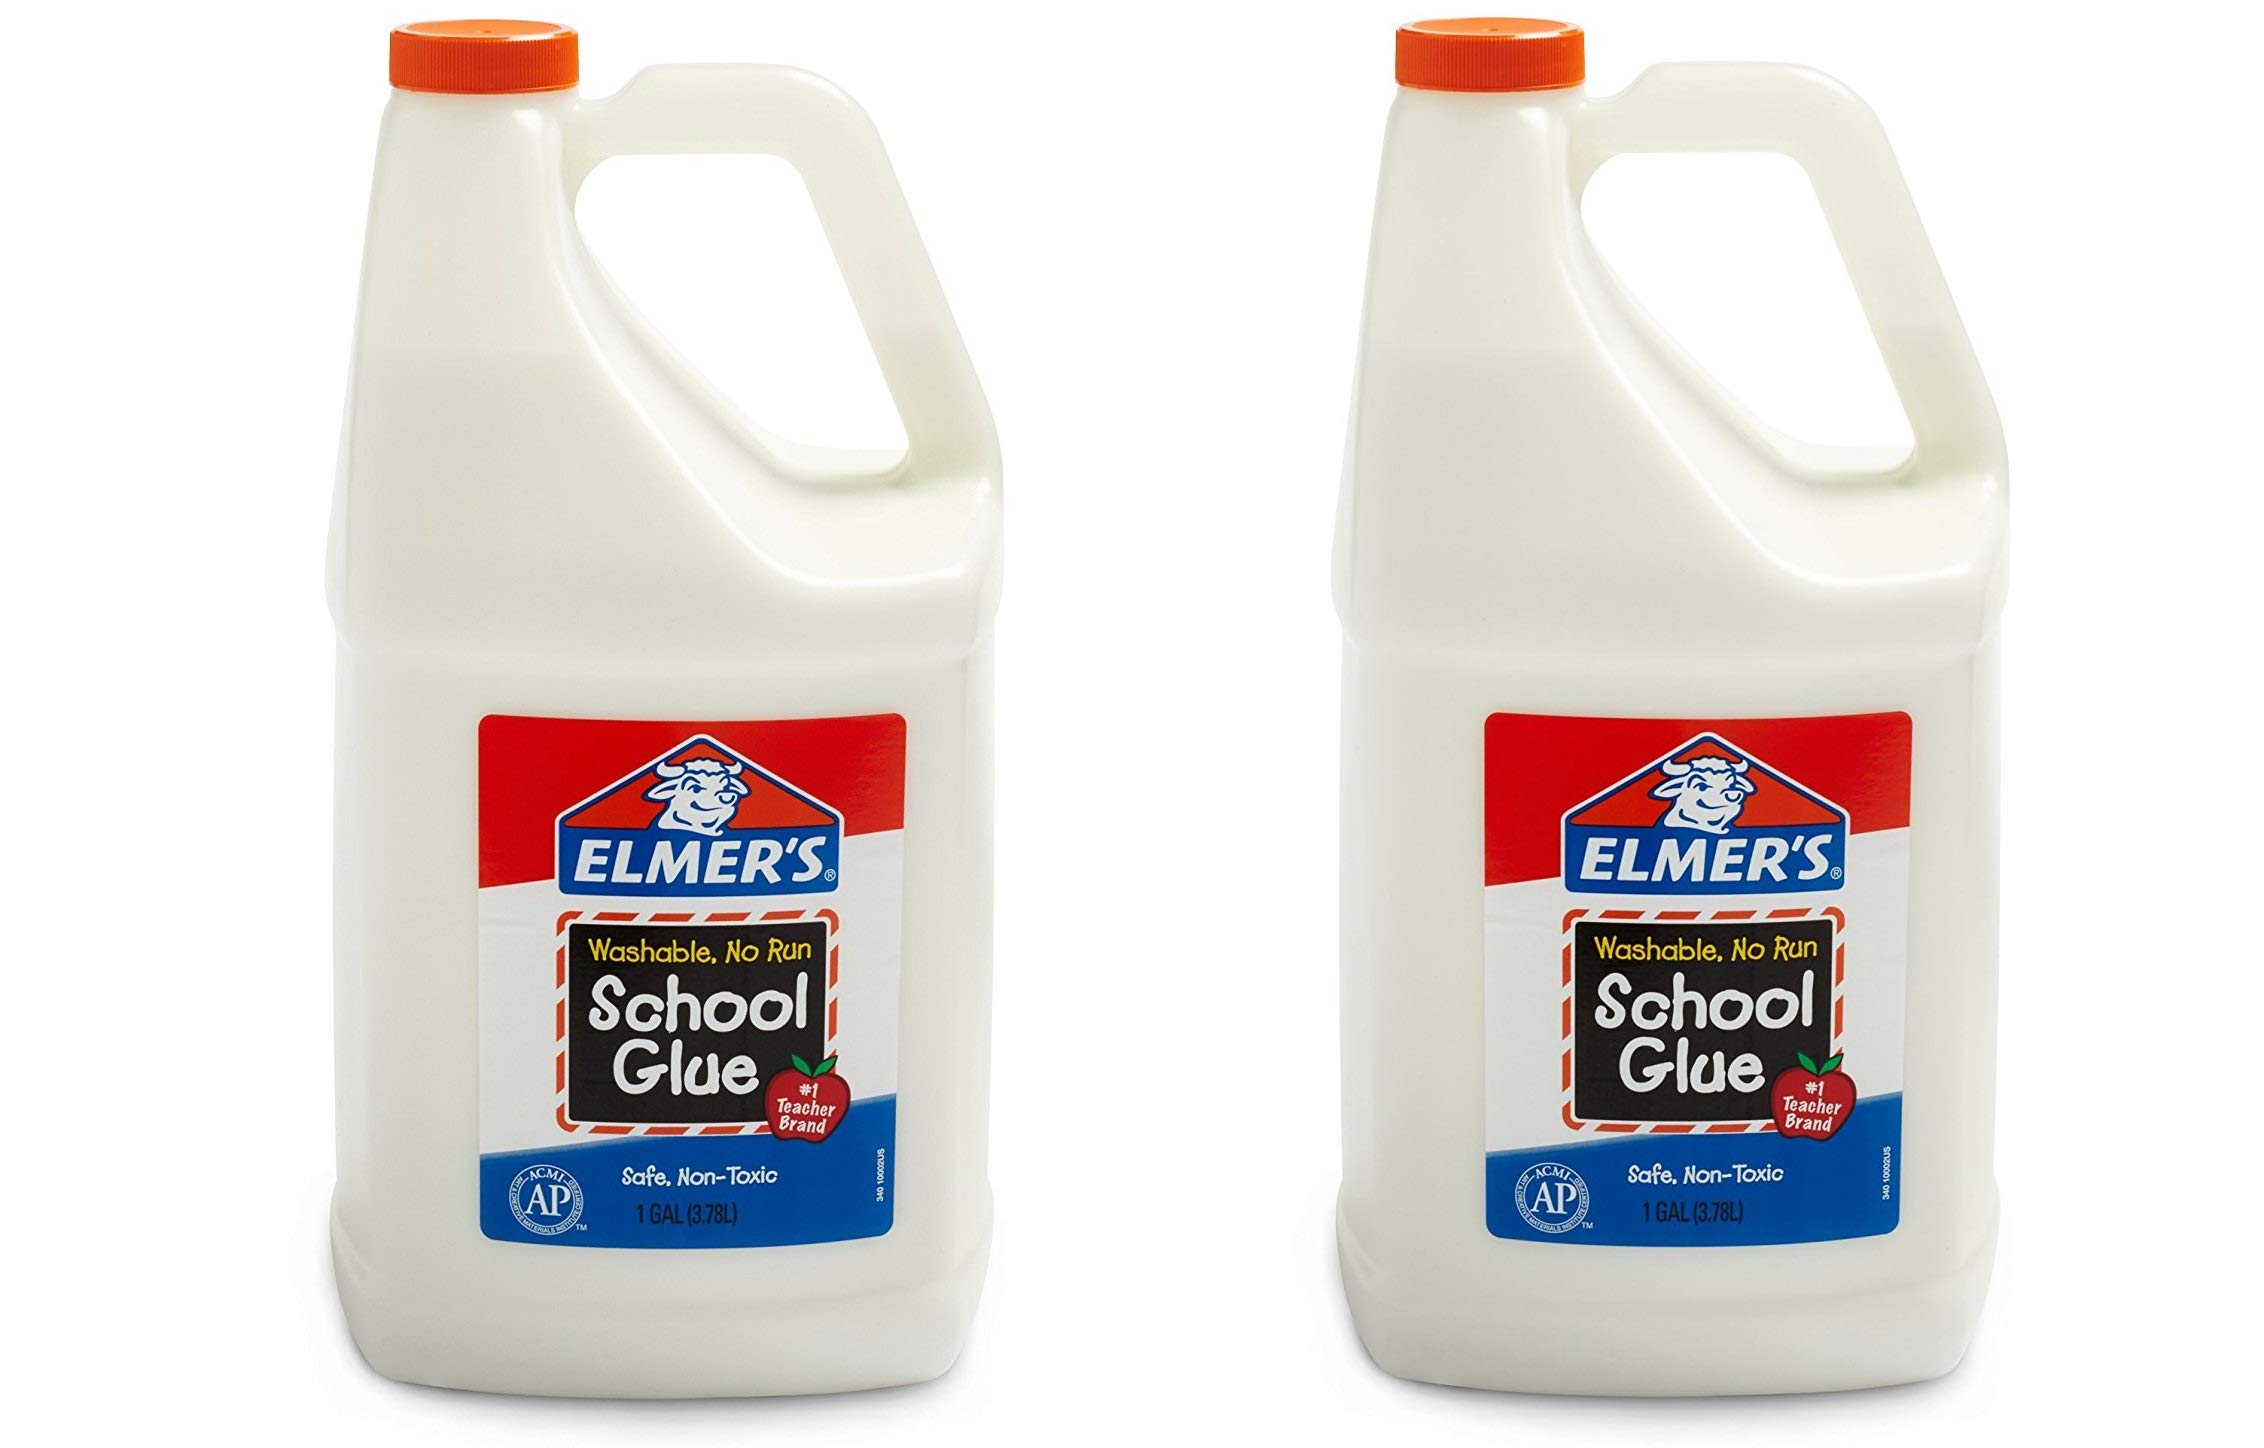 Elmers Liquid School Glue Washable - Great For Making Slime, 2 Pack (1 Gallon)